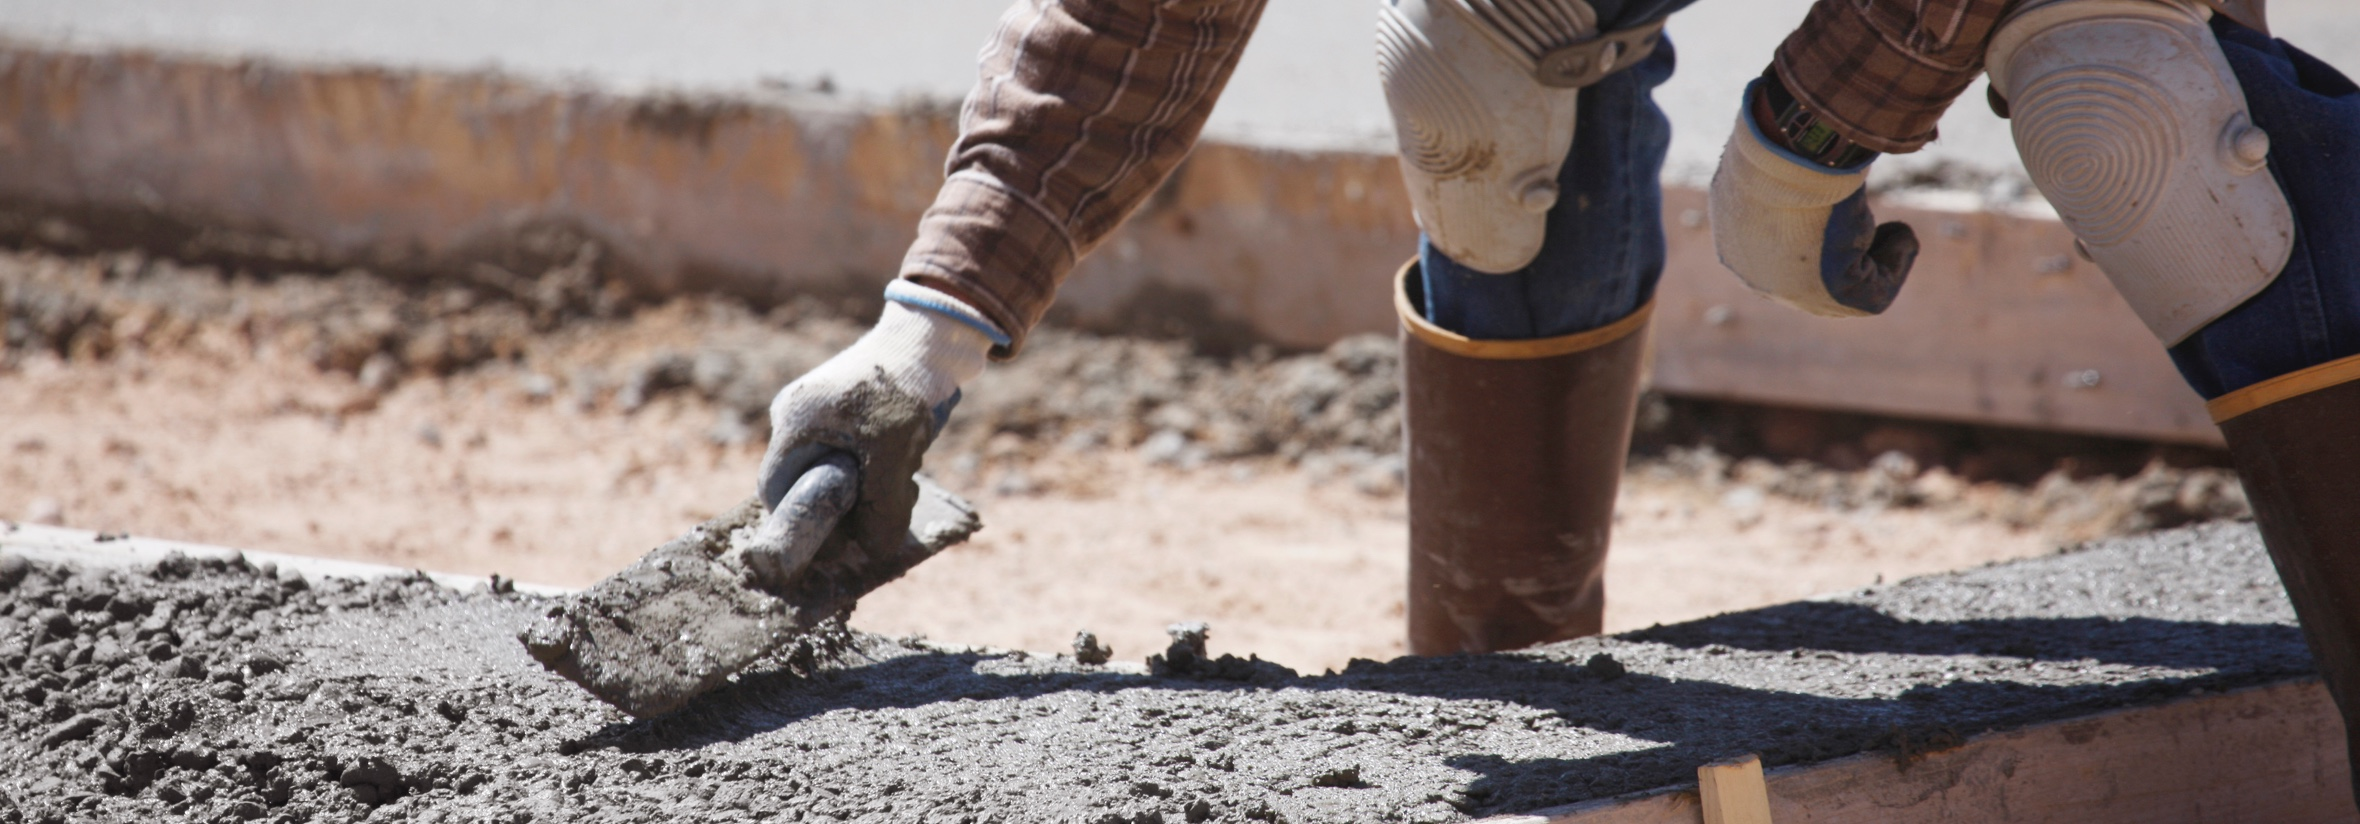 worker in rubber boots applies concrete with trowel